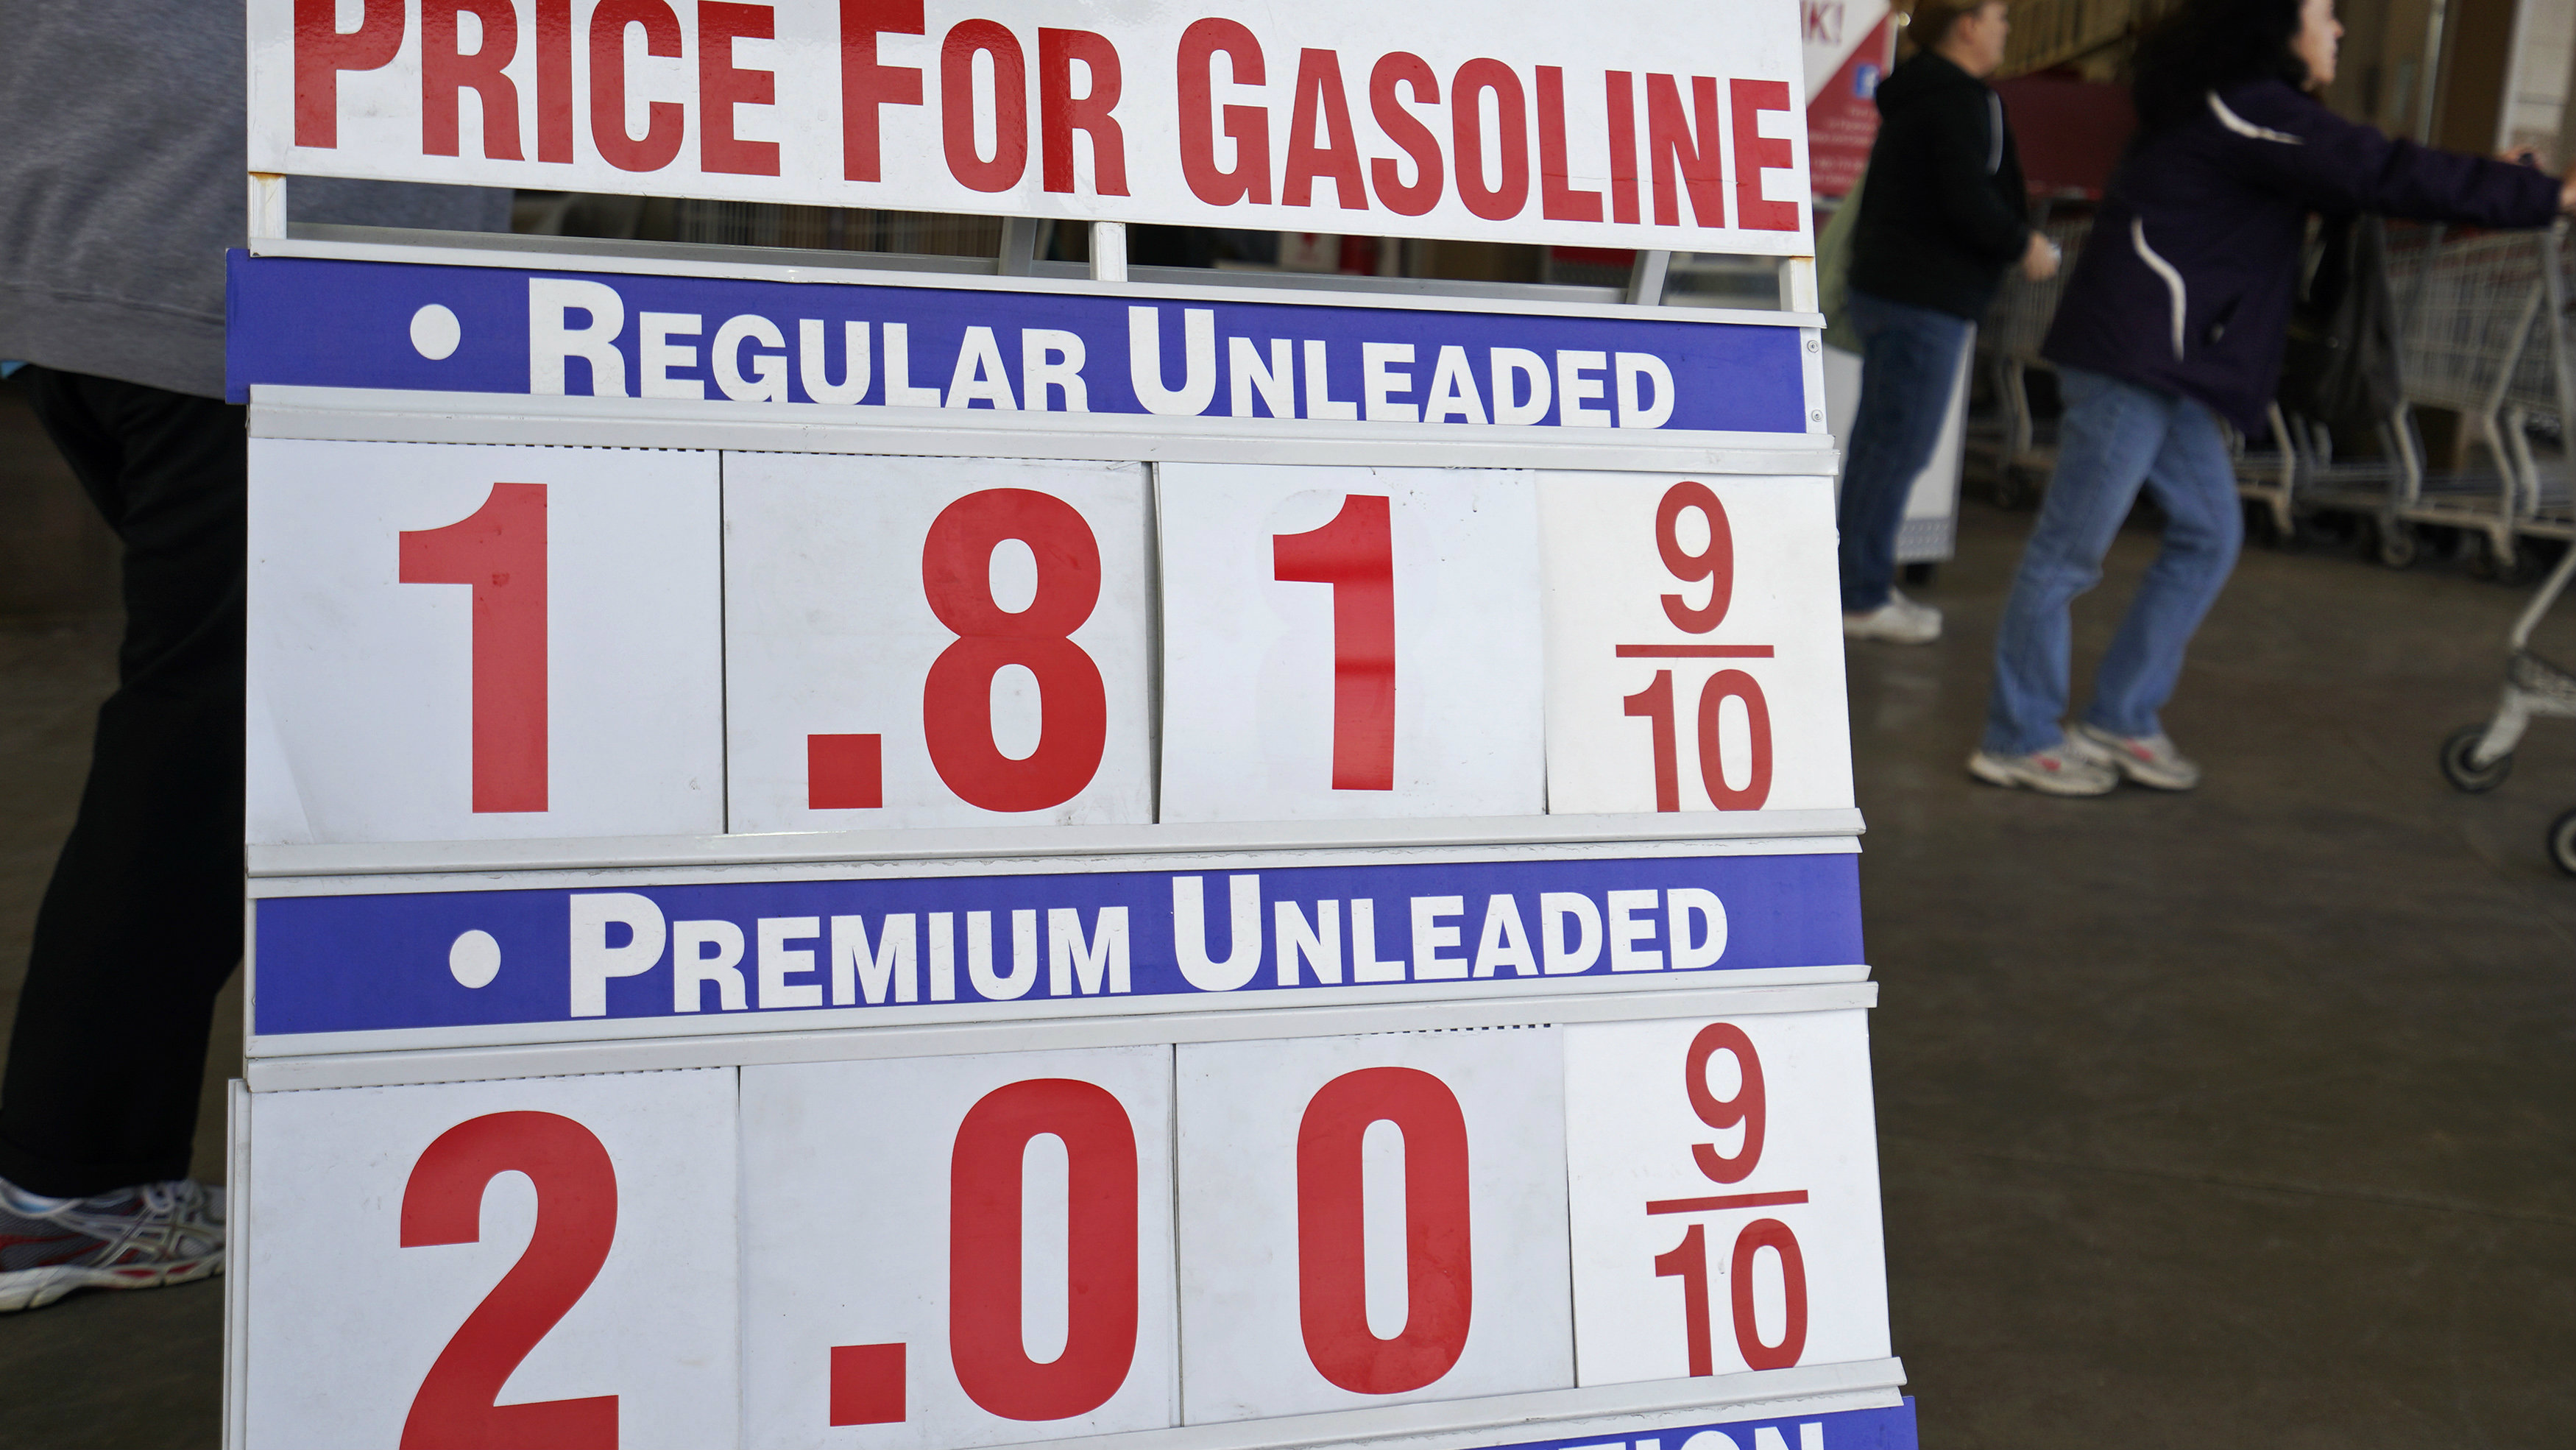 The price sign outside Costco in Westminster, Colorado, shows gas selling for $1.81.9 for the first time in years, December 23, 2014.